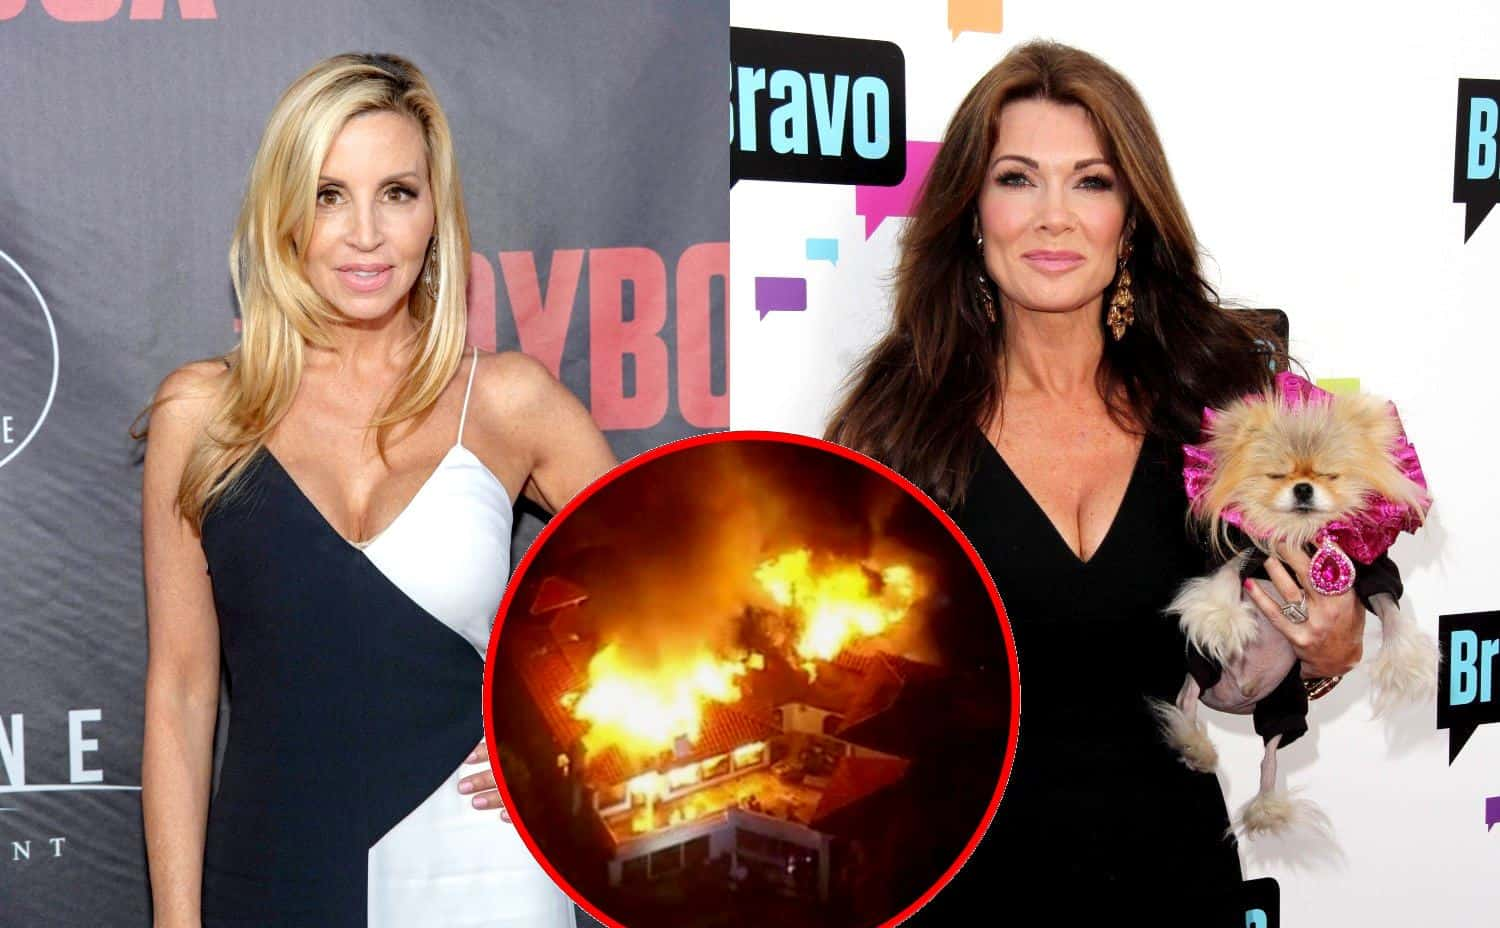 RHOBH Camille Grammer and Lisa Vanderpump Malibu Fires Home Update